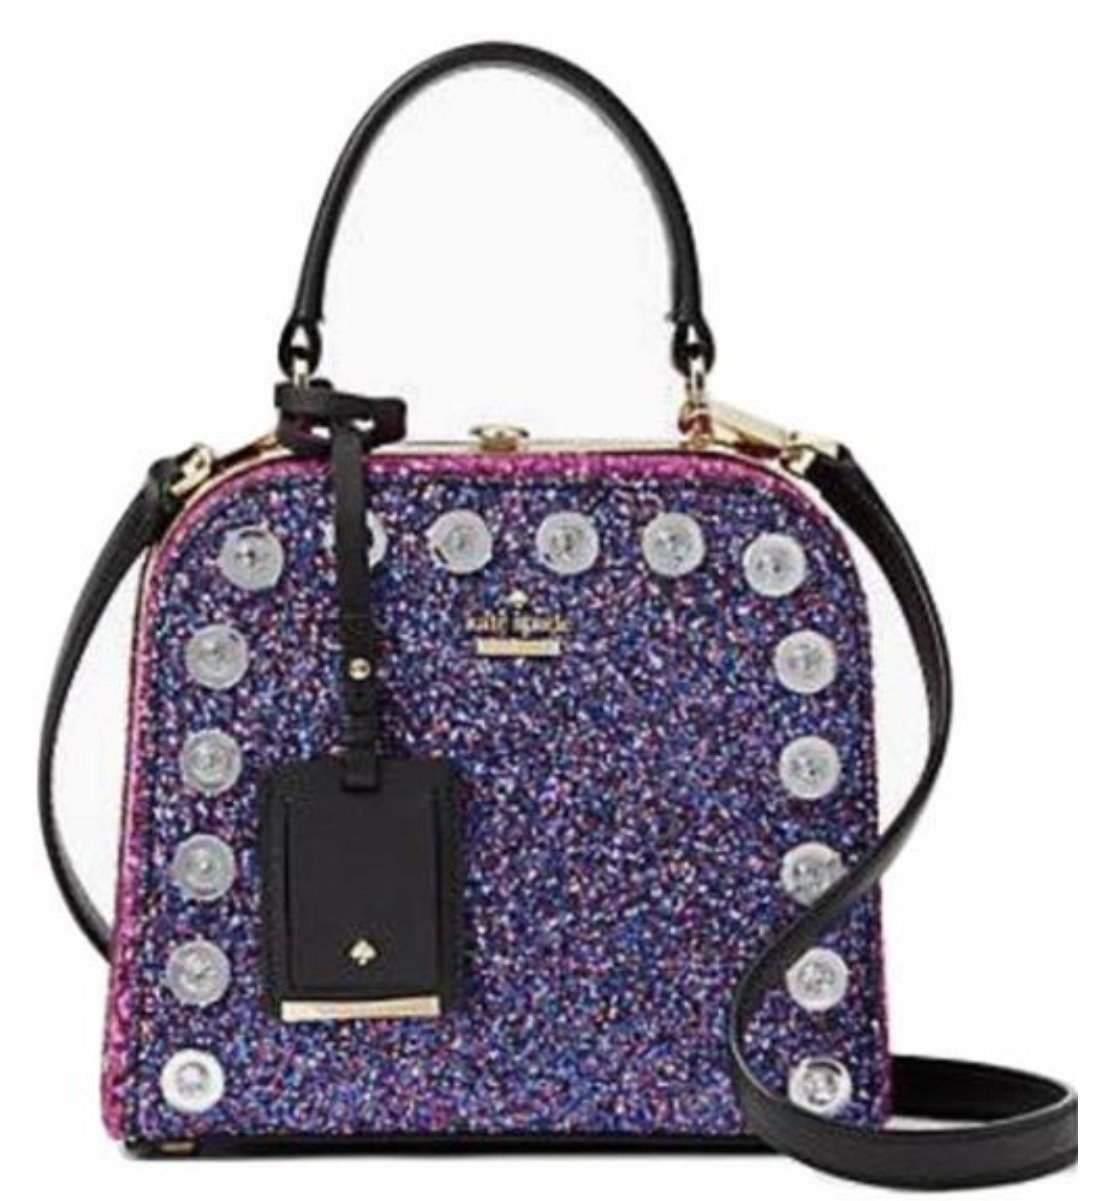 Kate Spade Violina Skyline Way Crossbody Glitter Pink Handbag by Kate Spade New York